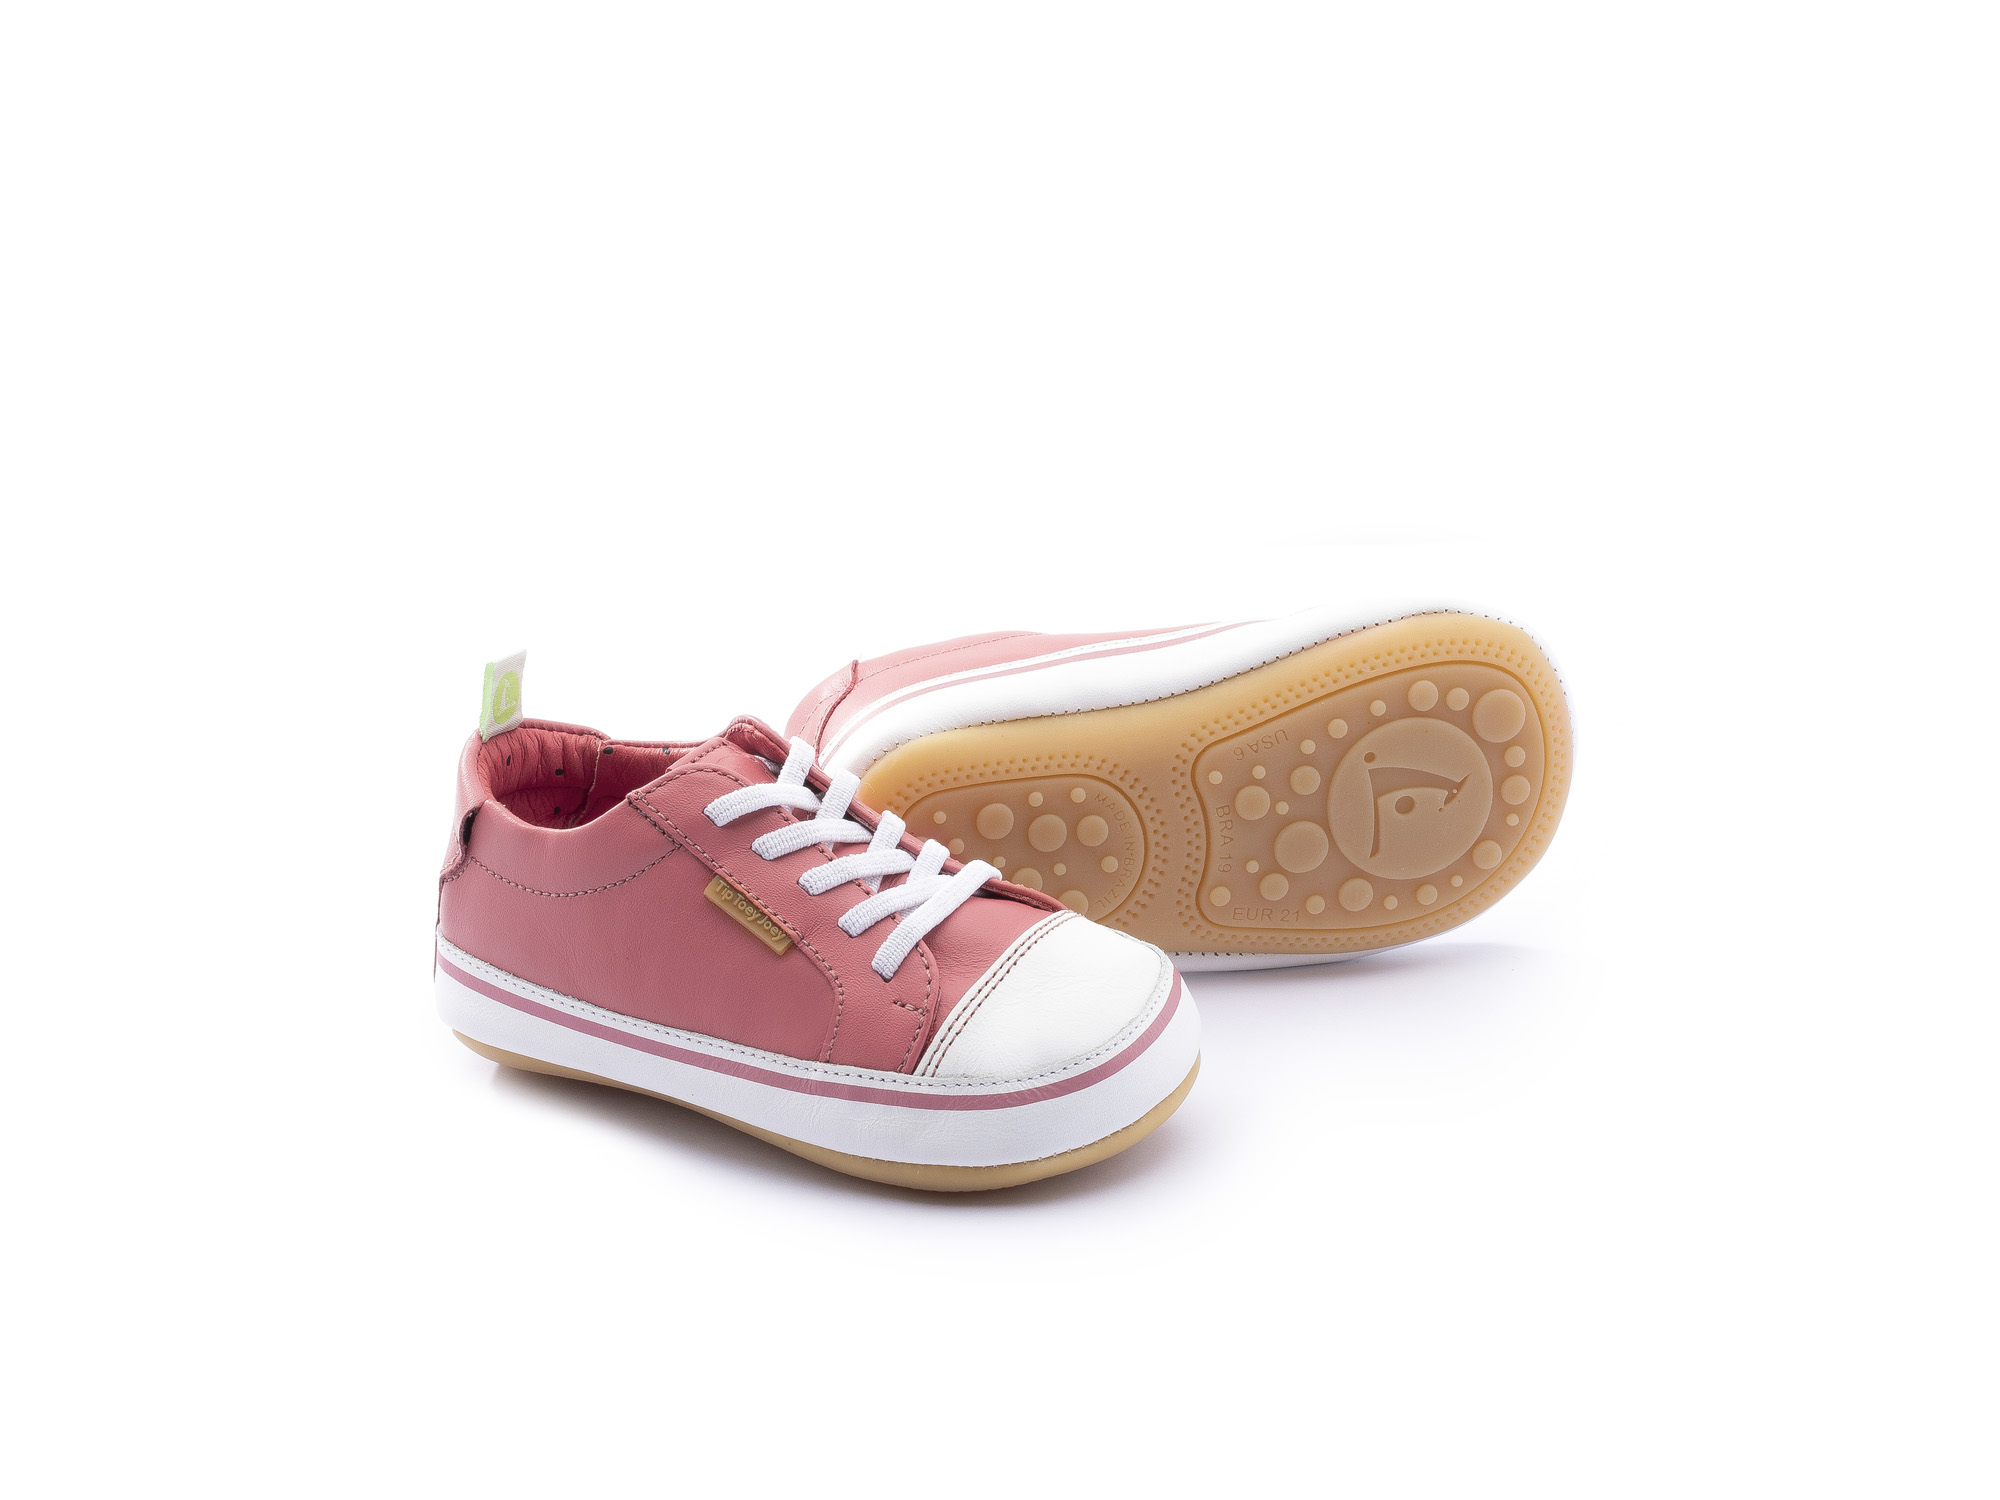 Sneaker Casual Funky Coral Matte Baby 0 à 2 anos - 0